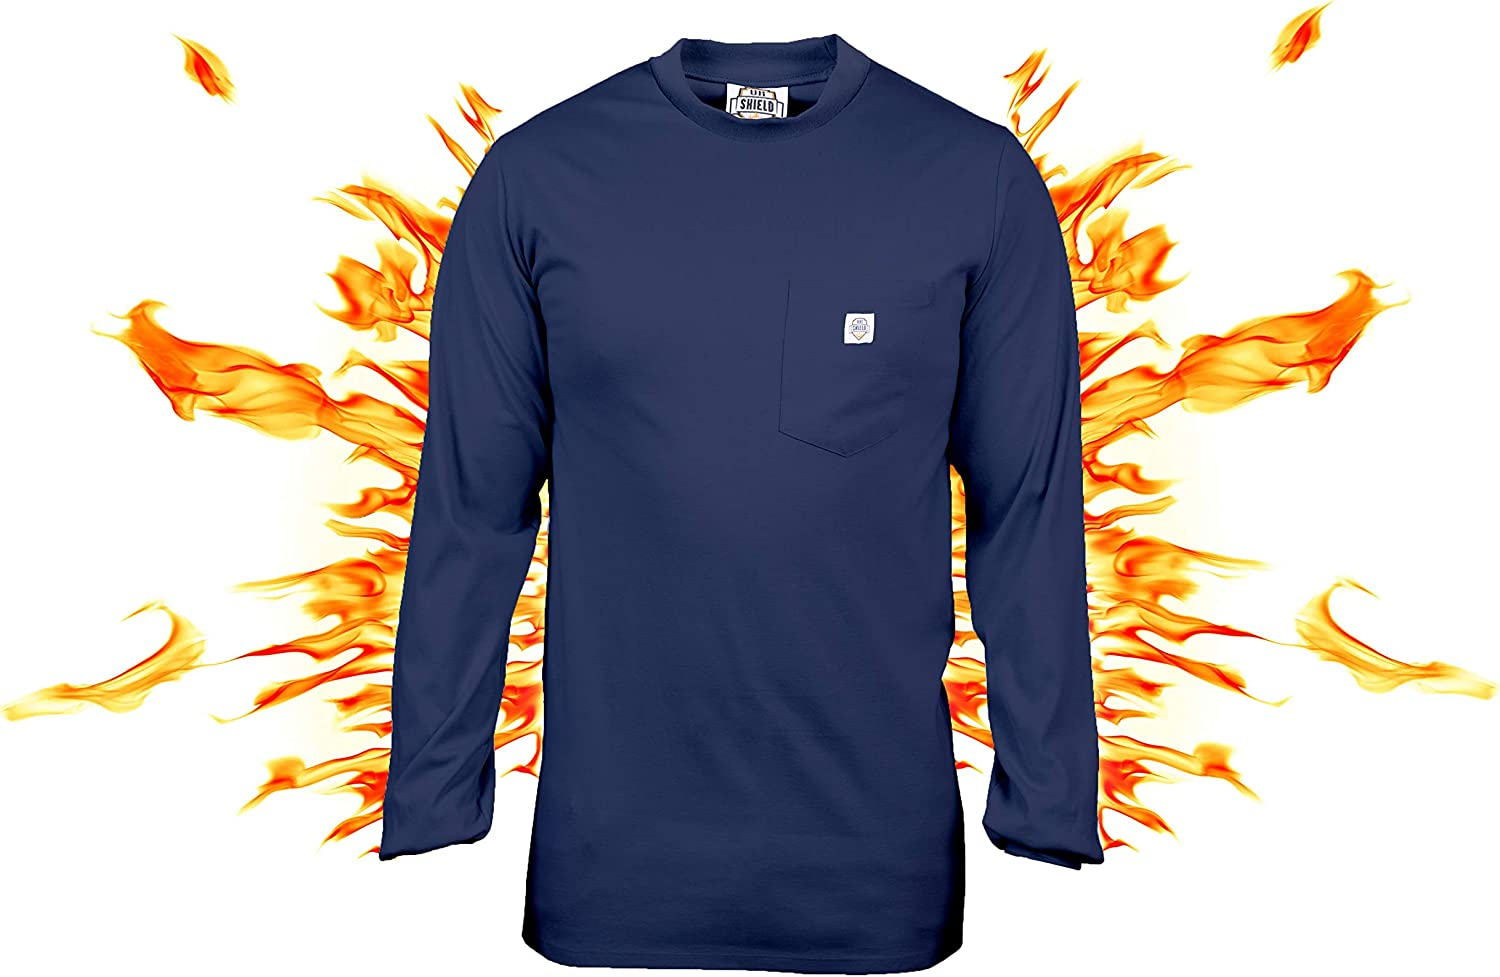 Dripping More Navy FR T-Shirt Defies Melting Ur Shield Fire Resistant 7 oz Welders Cotton Long Sleeve T-Shirt Fire Retardant Clothing for Electricians FR Tee Shirt After-Burning